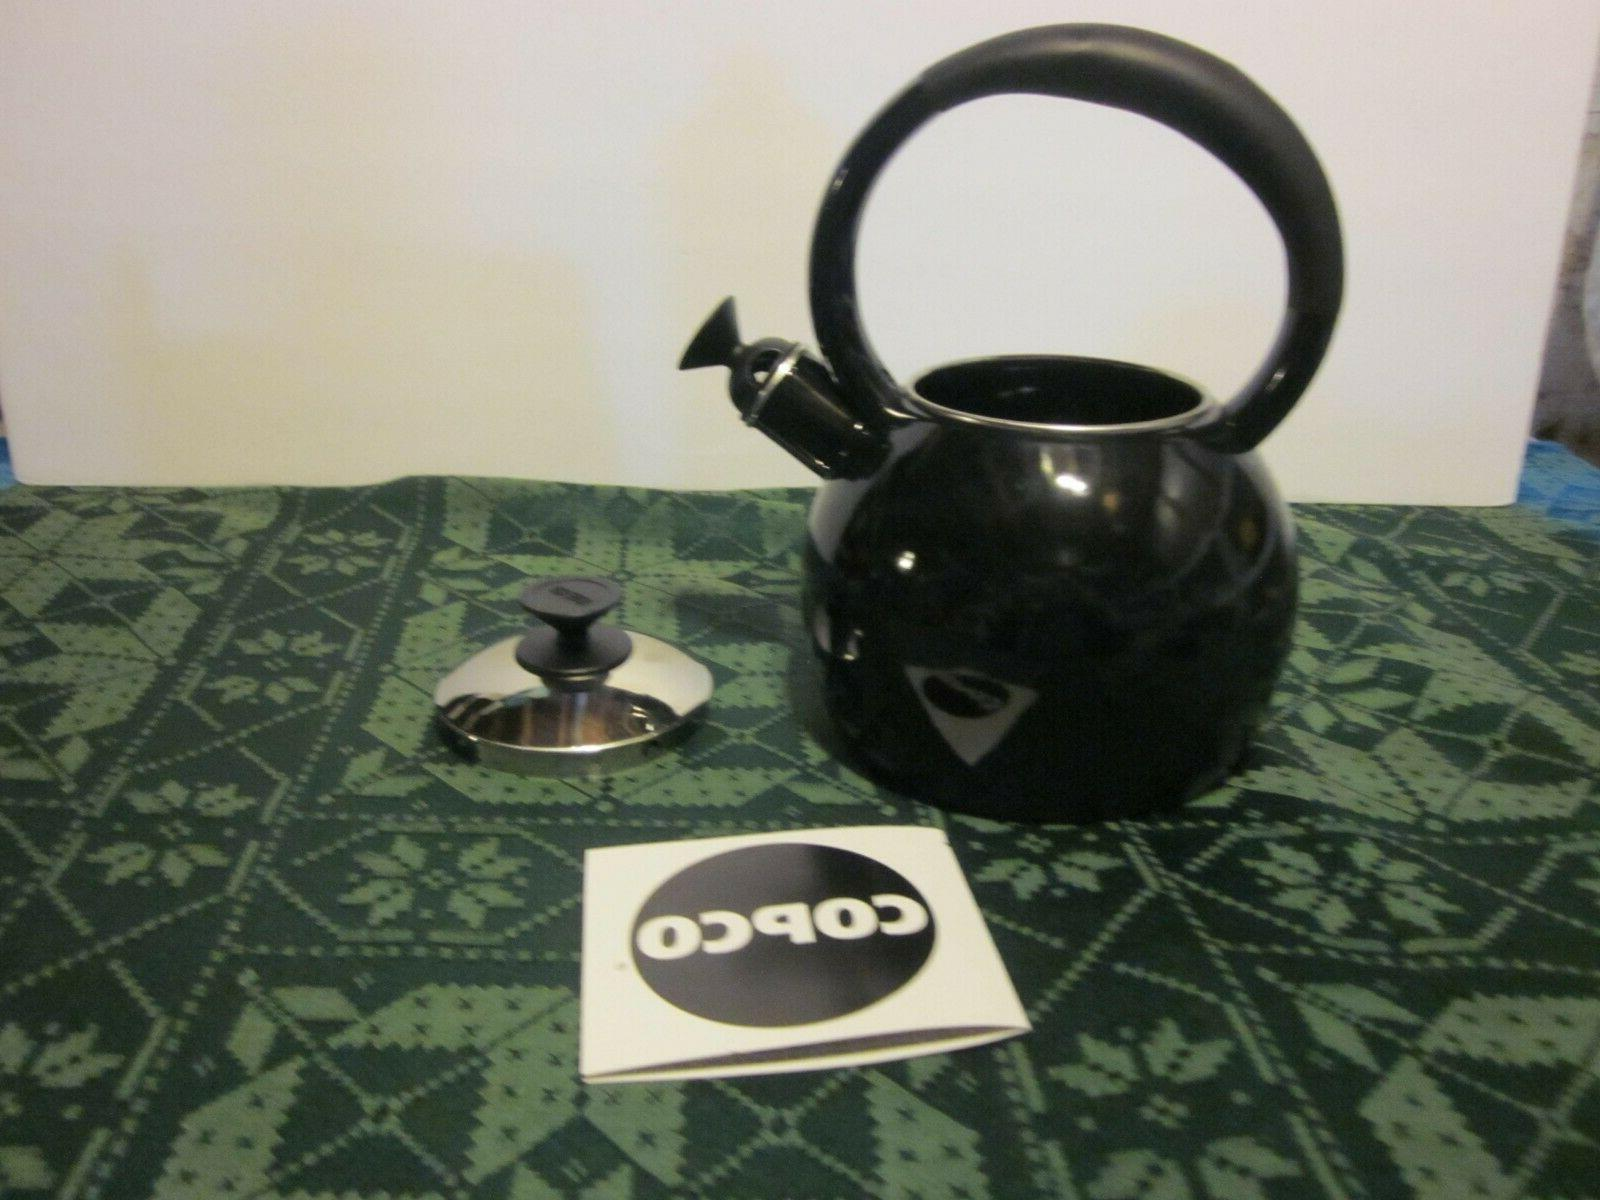 NIB KETTLE COPCO TEAPOT BLACK CUP RESIST IN BOX